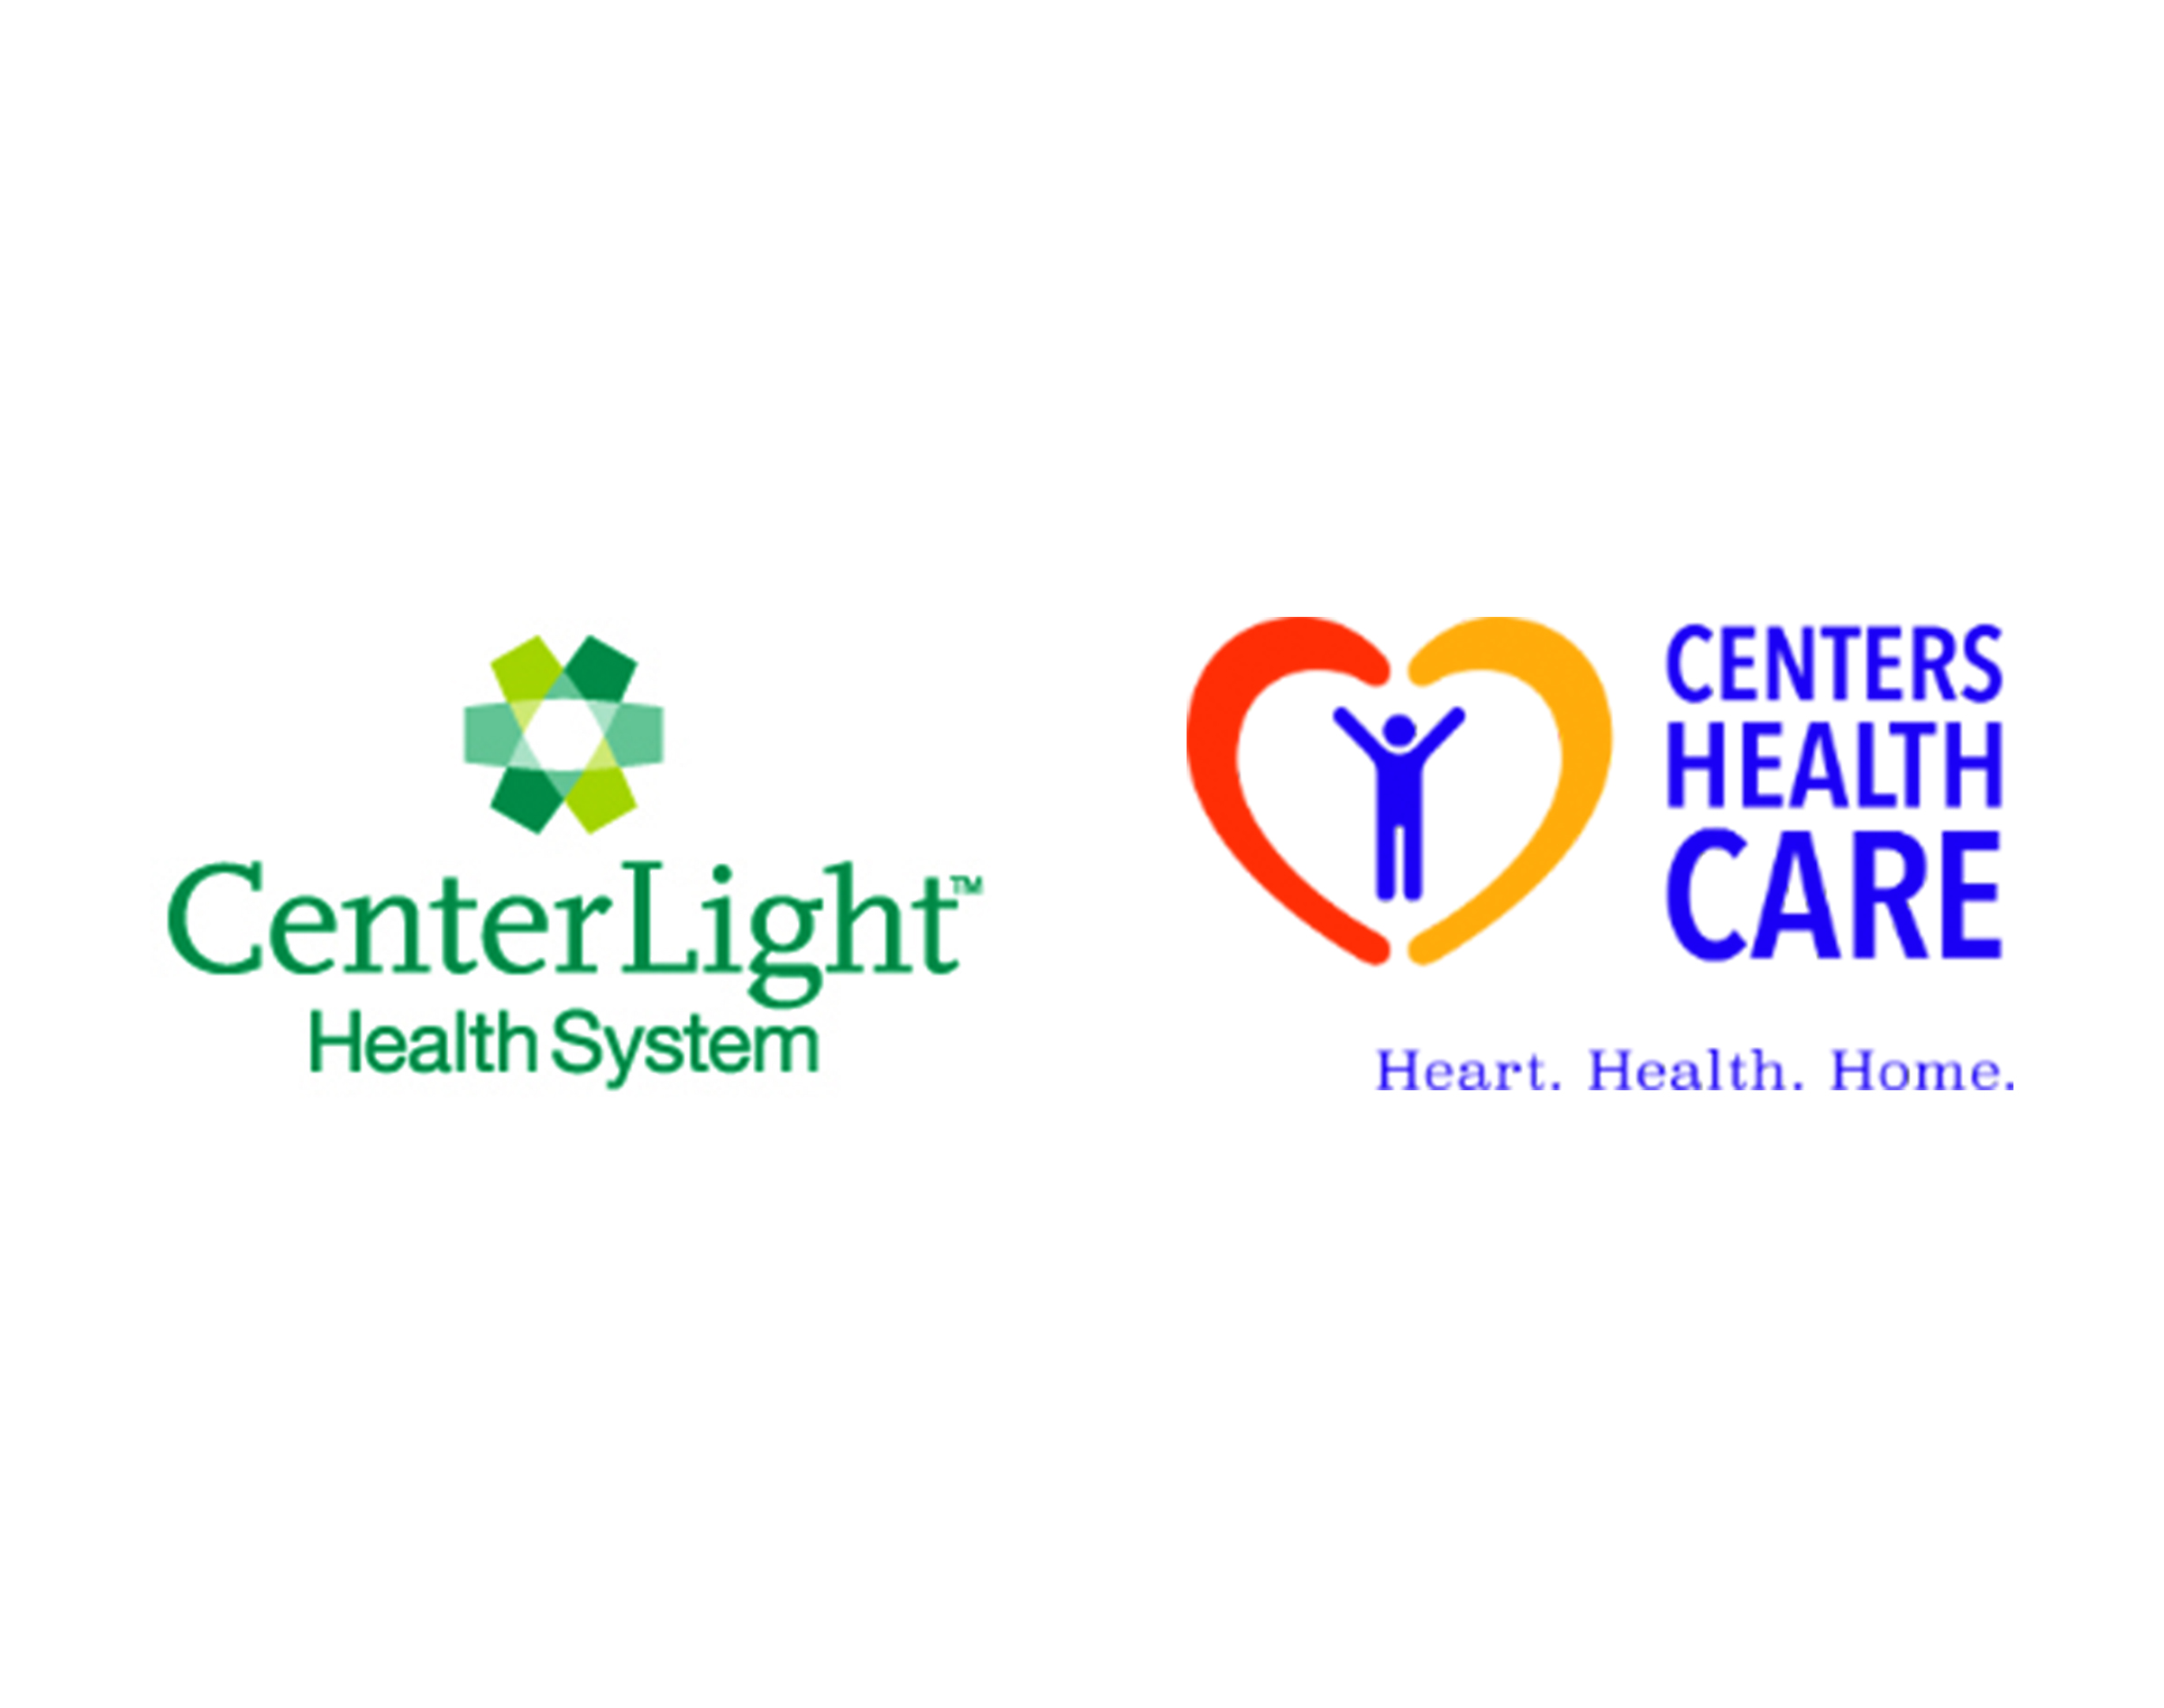 Sale of CenterLight\'s MLTC plan worries consumer rights advocates ...